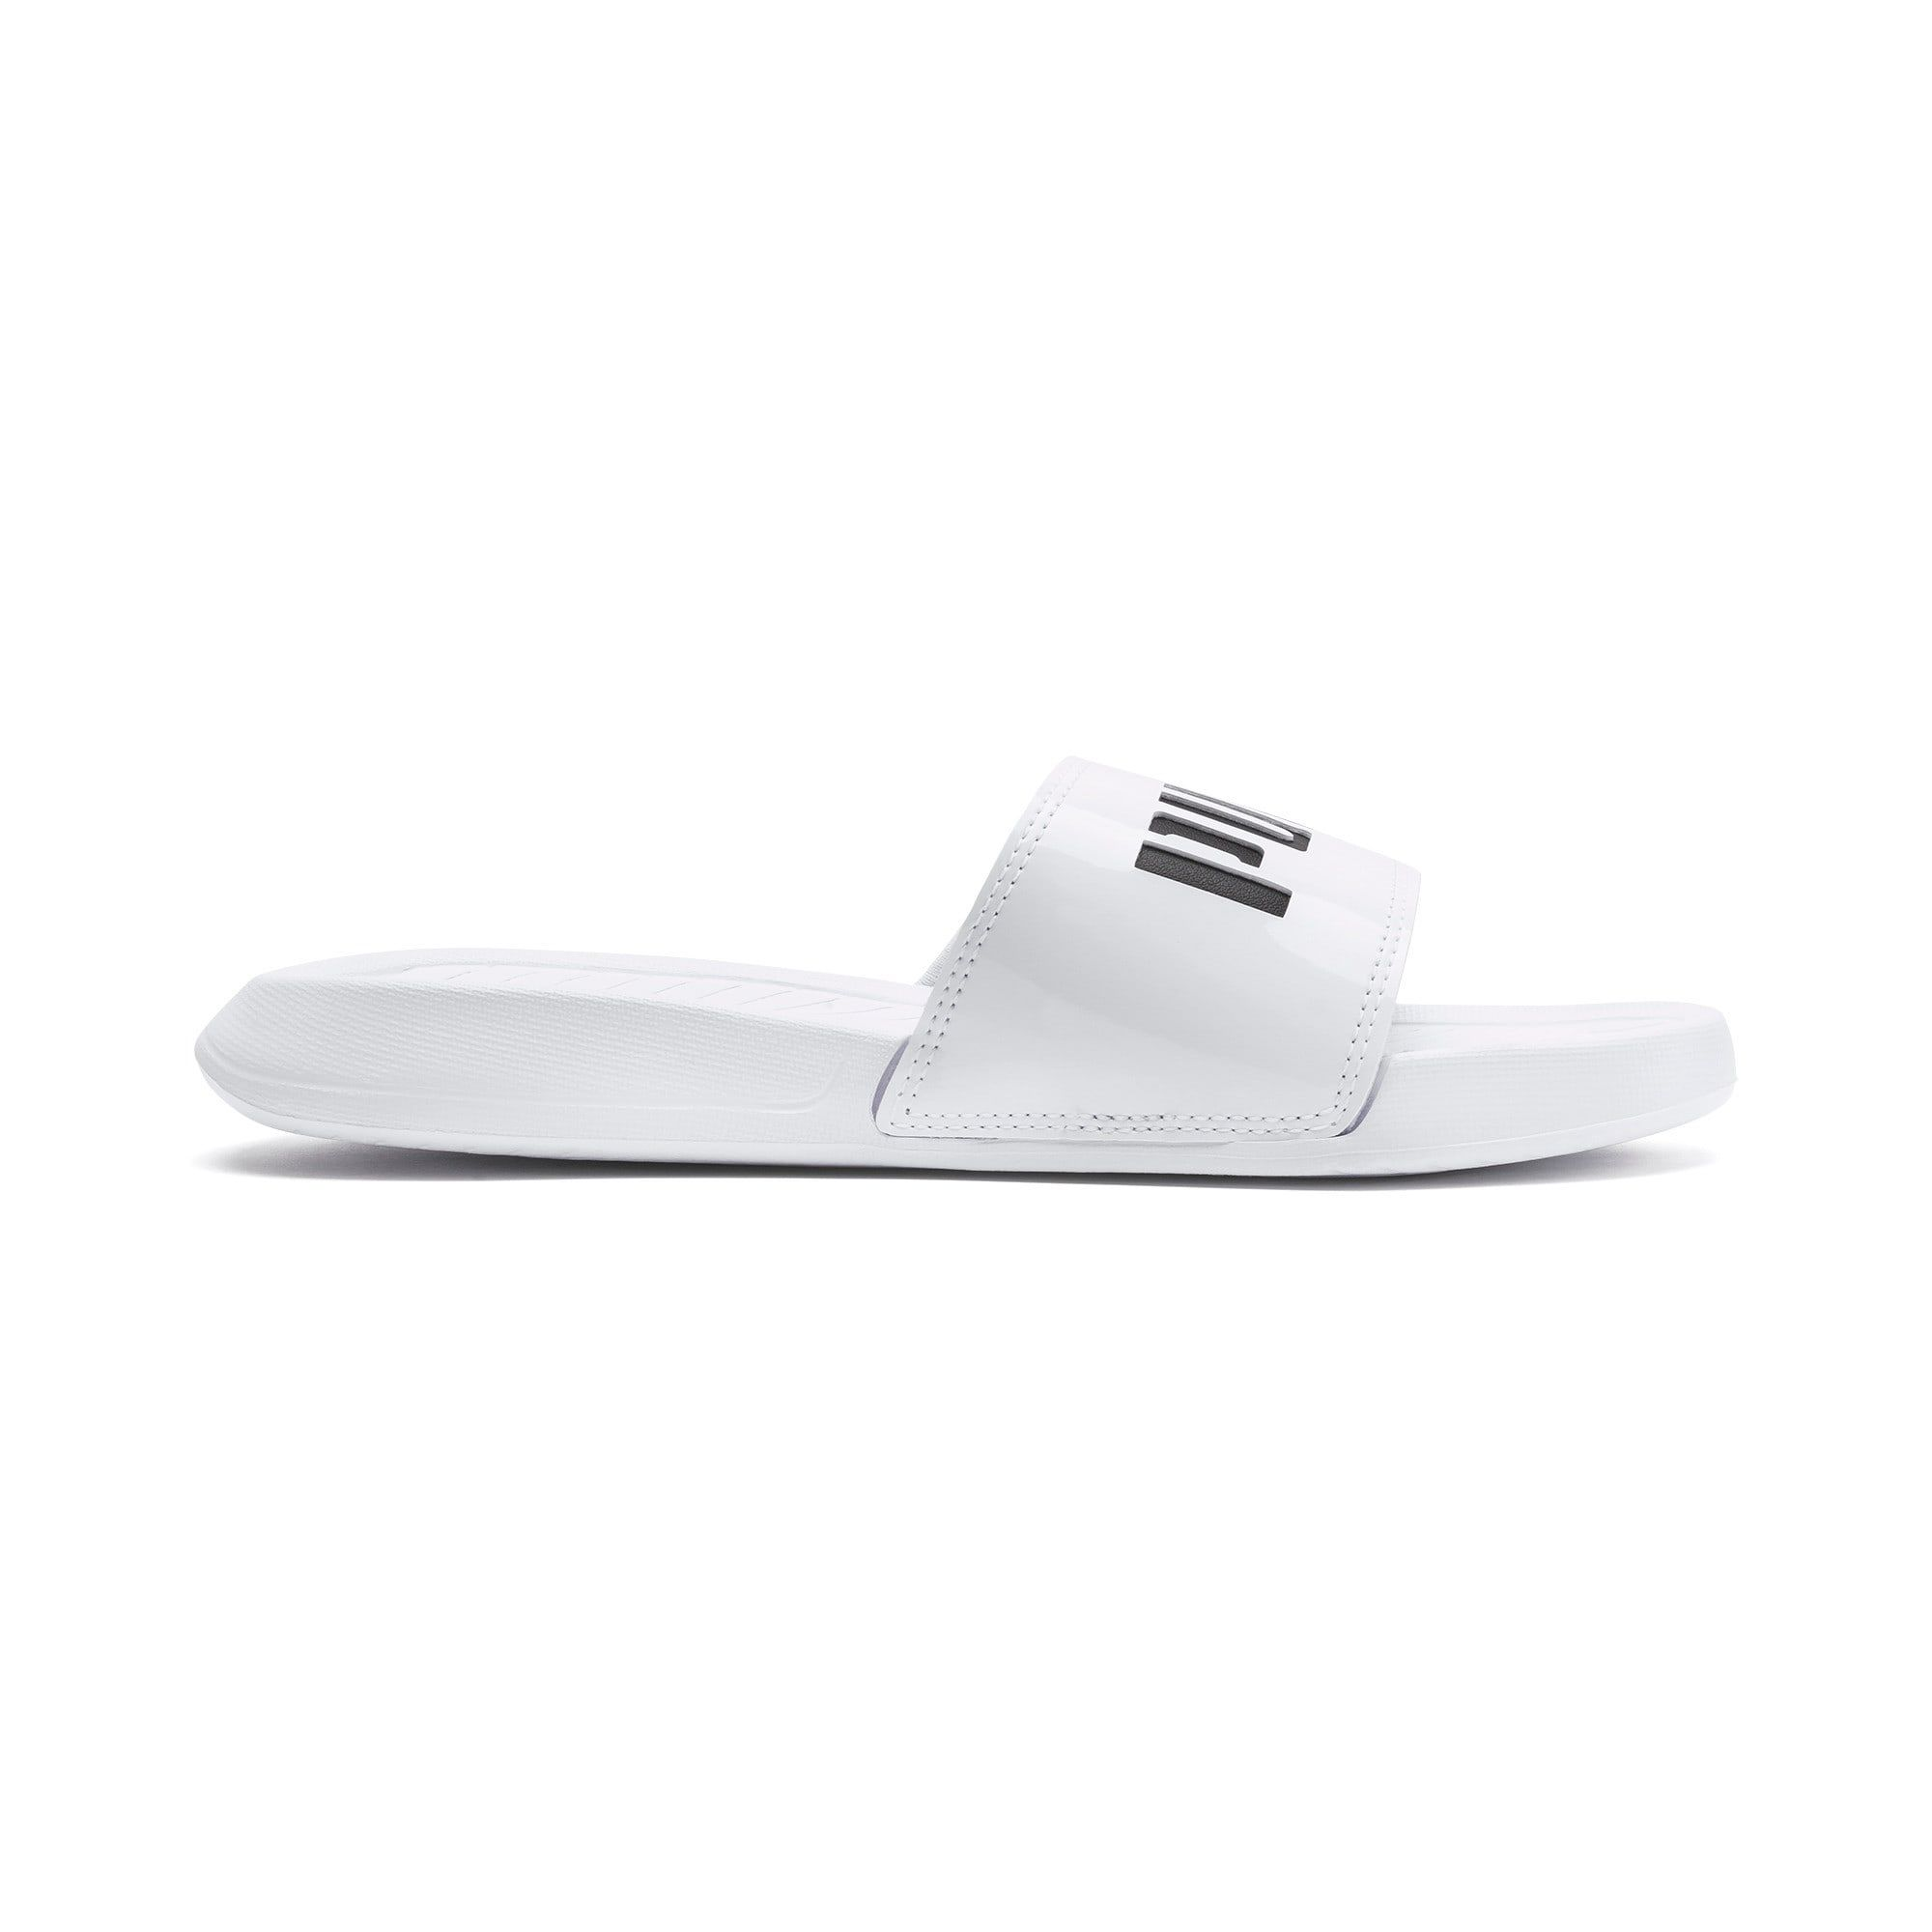 PUMA Popcat Patent Women's Sandals in White/Black size 8 #highsandals